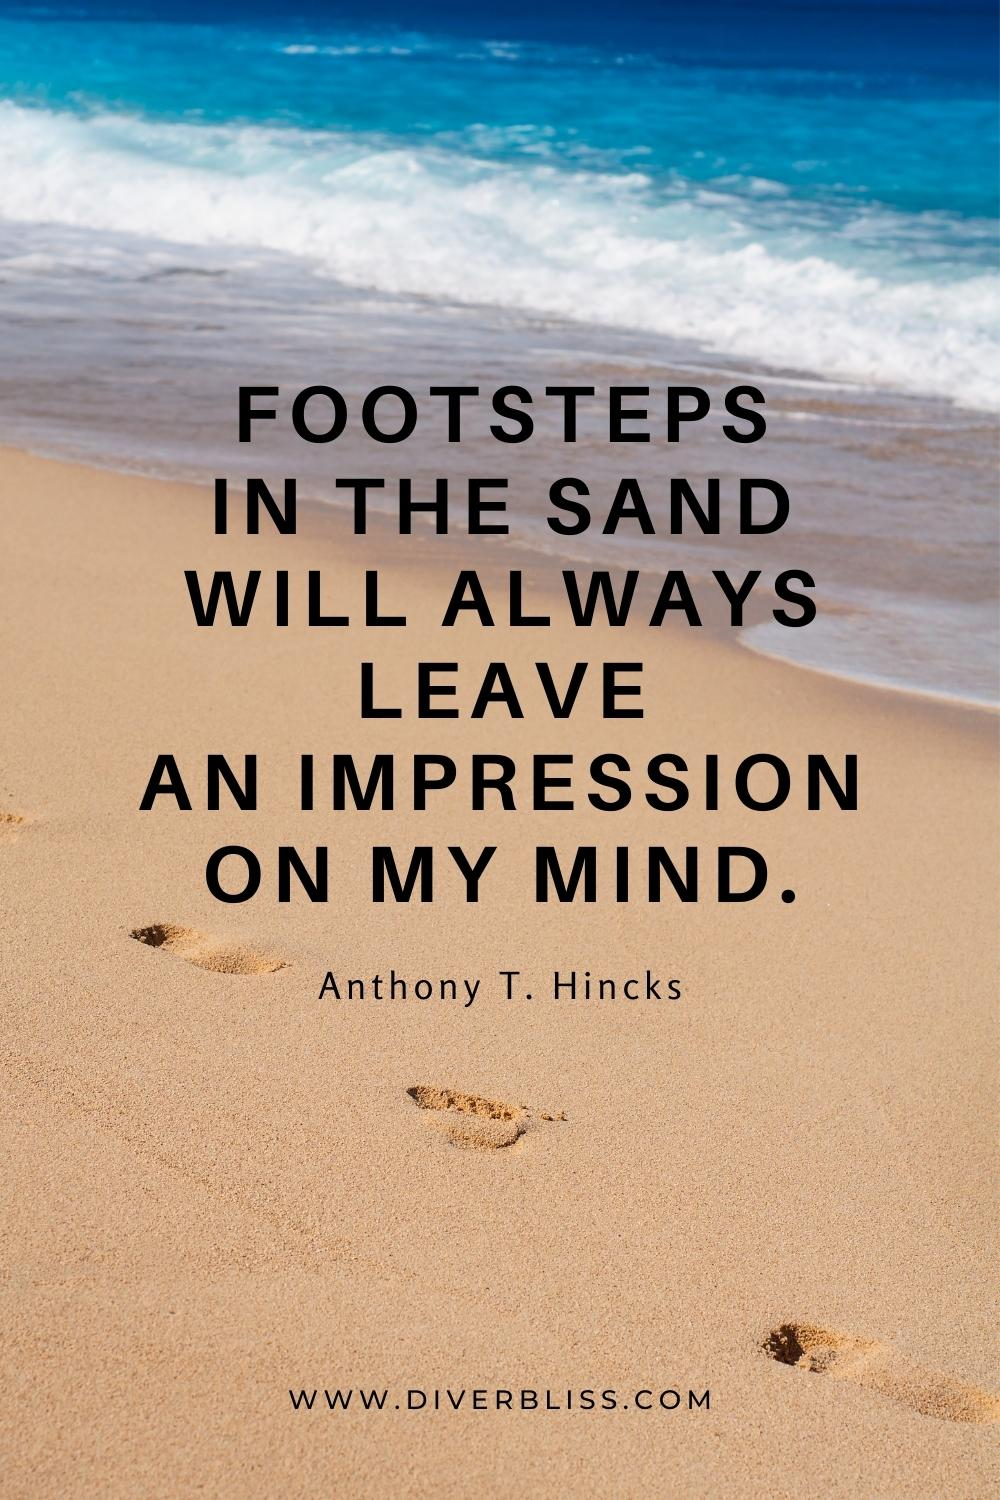 """""""Footsteps in the sand will always leave an impression on my mind."""" —Anthony T. Hincks"""